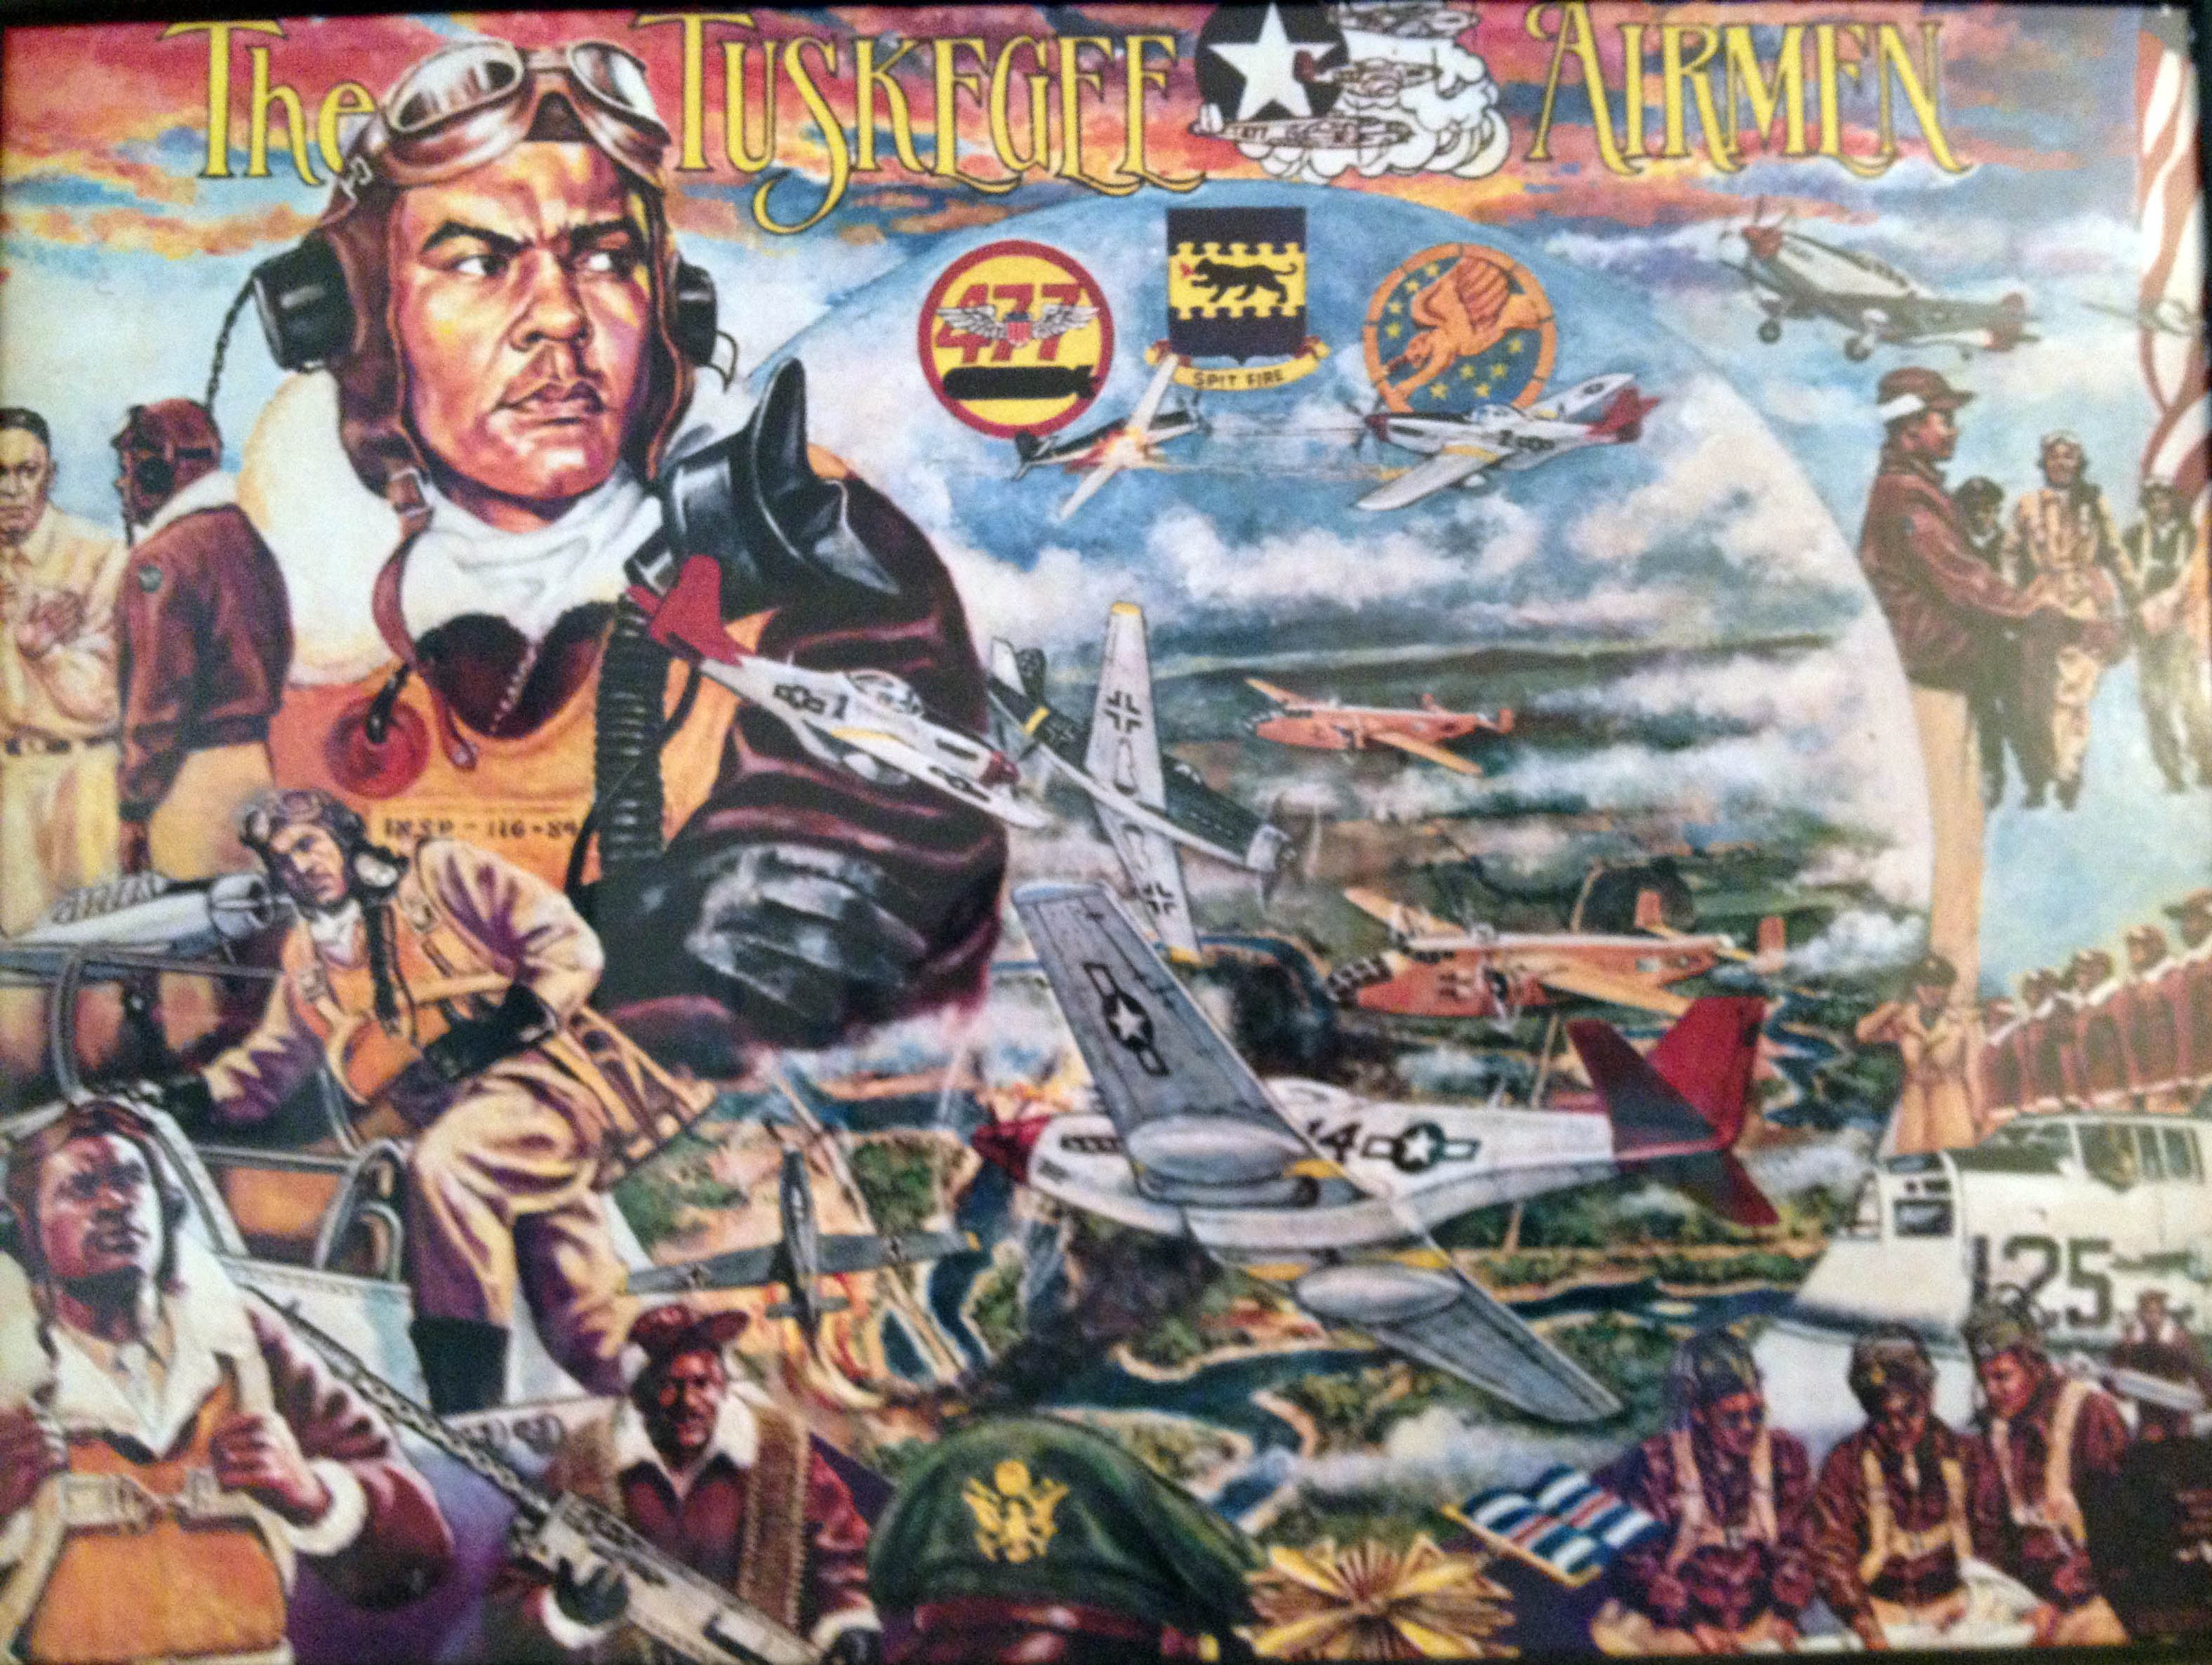 acc894c74687c62a8ed9_Tuskegee_poster.jpg